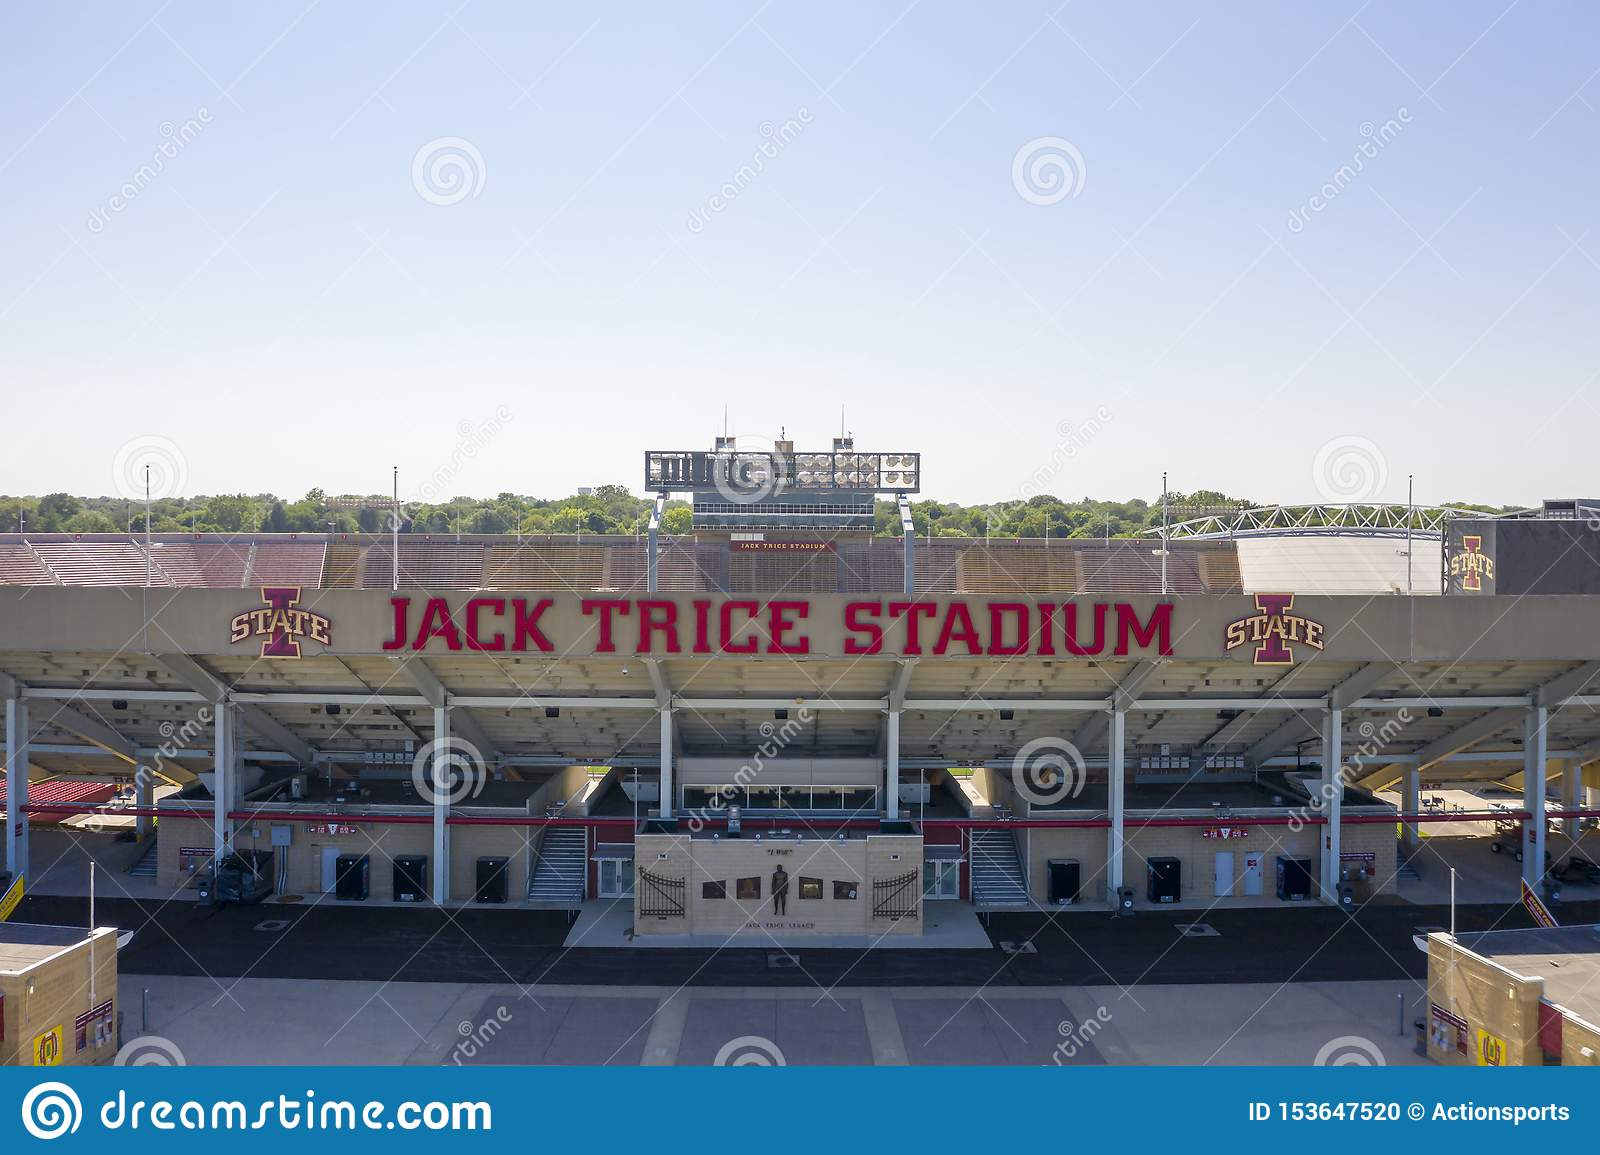 Aerial Views Of Jack Trice Stadium On The Campus Of Iowa State University